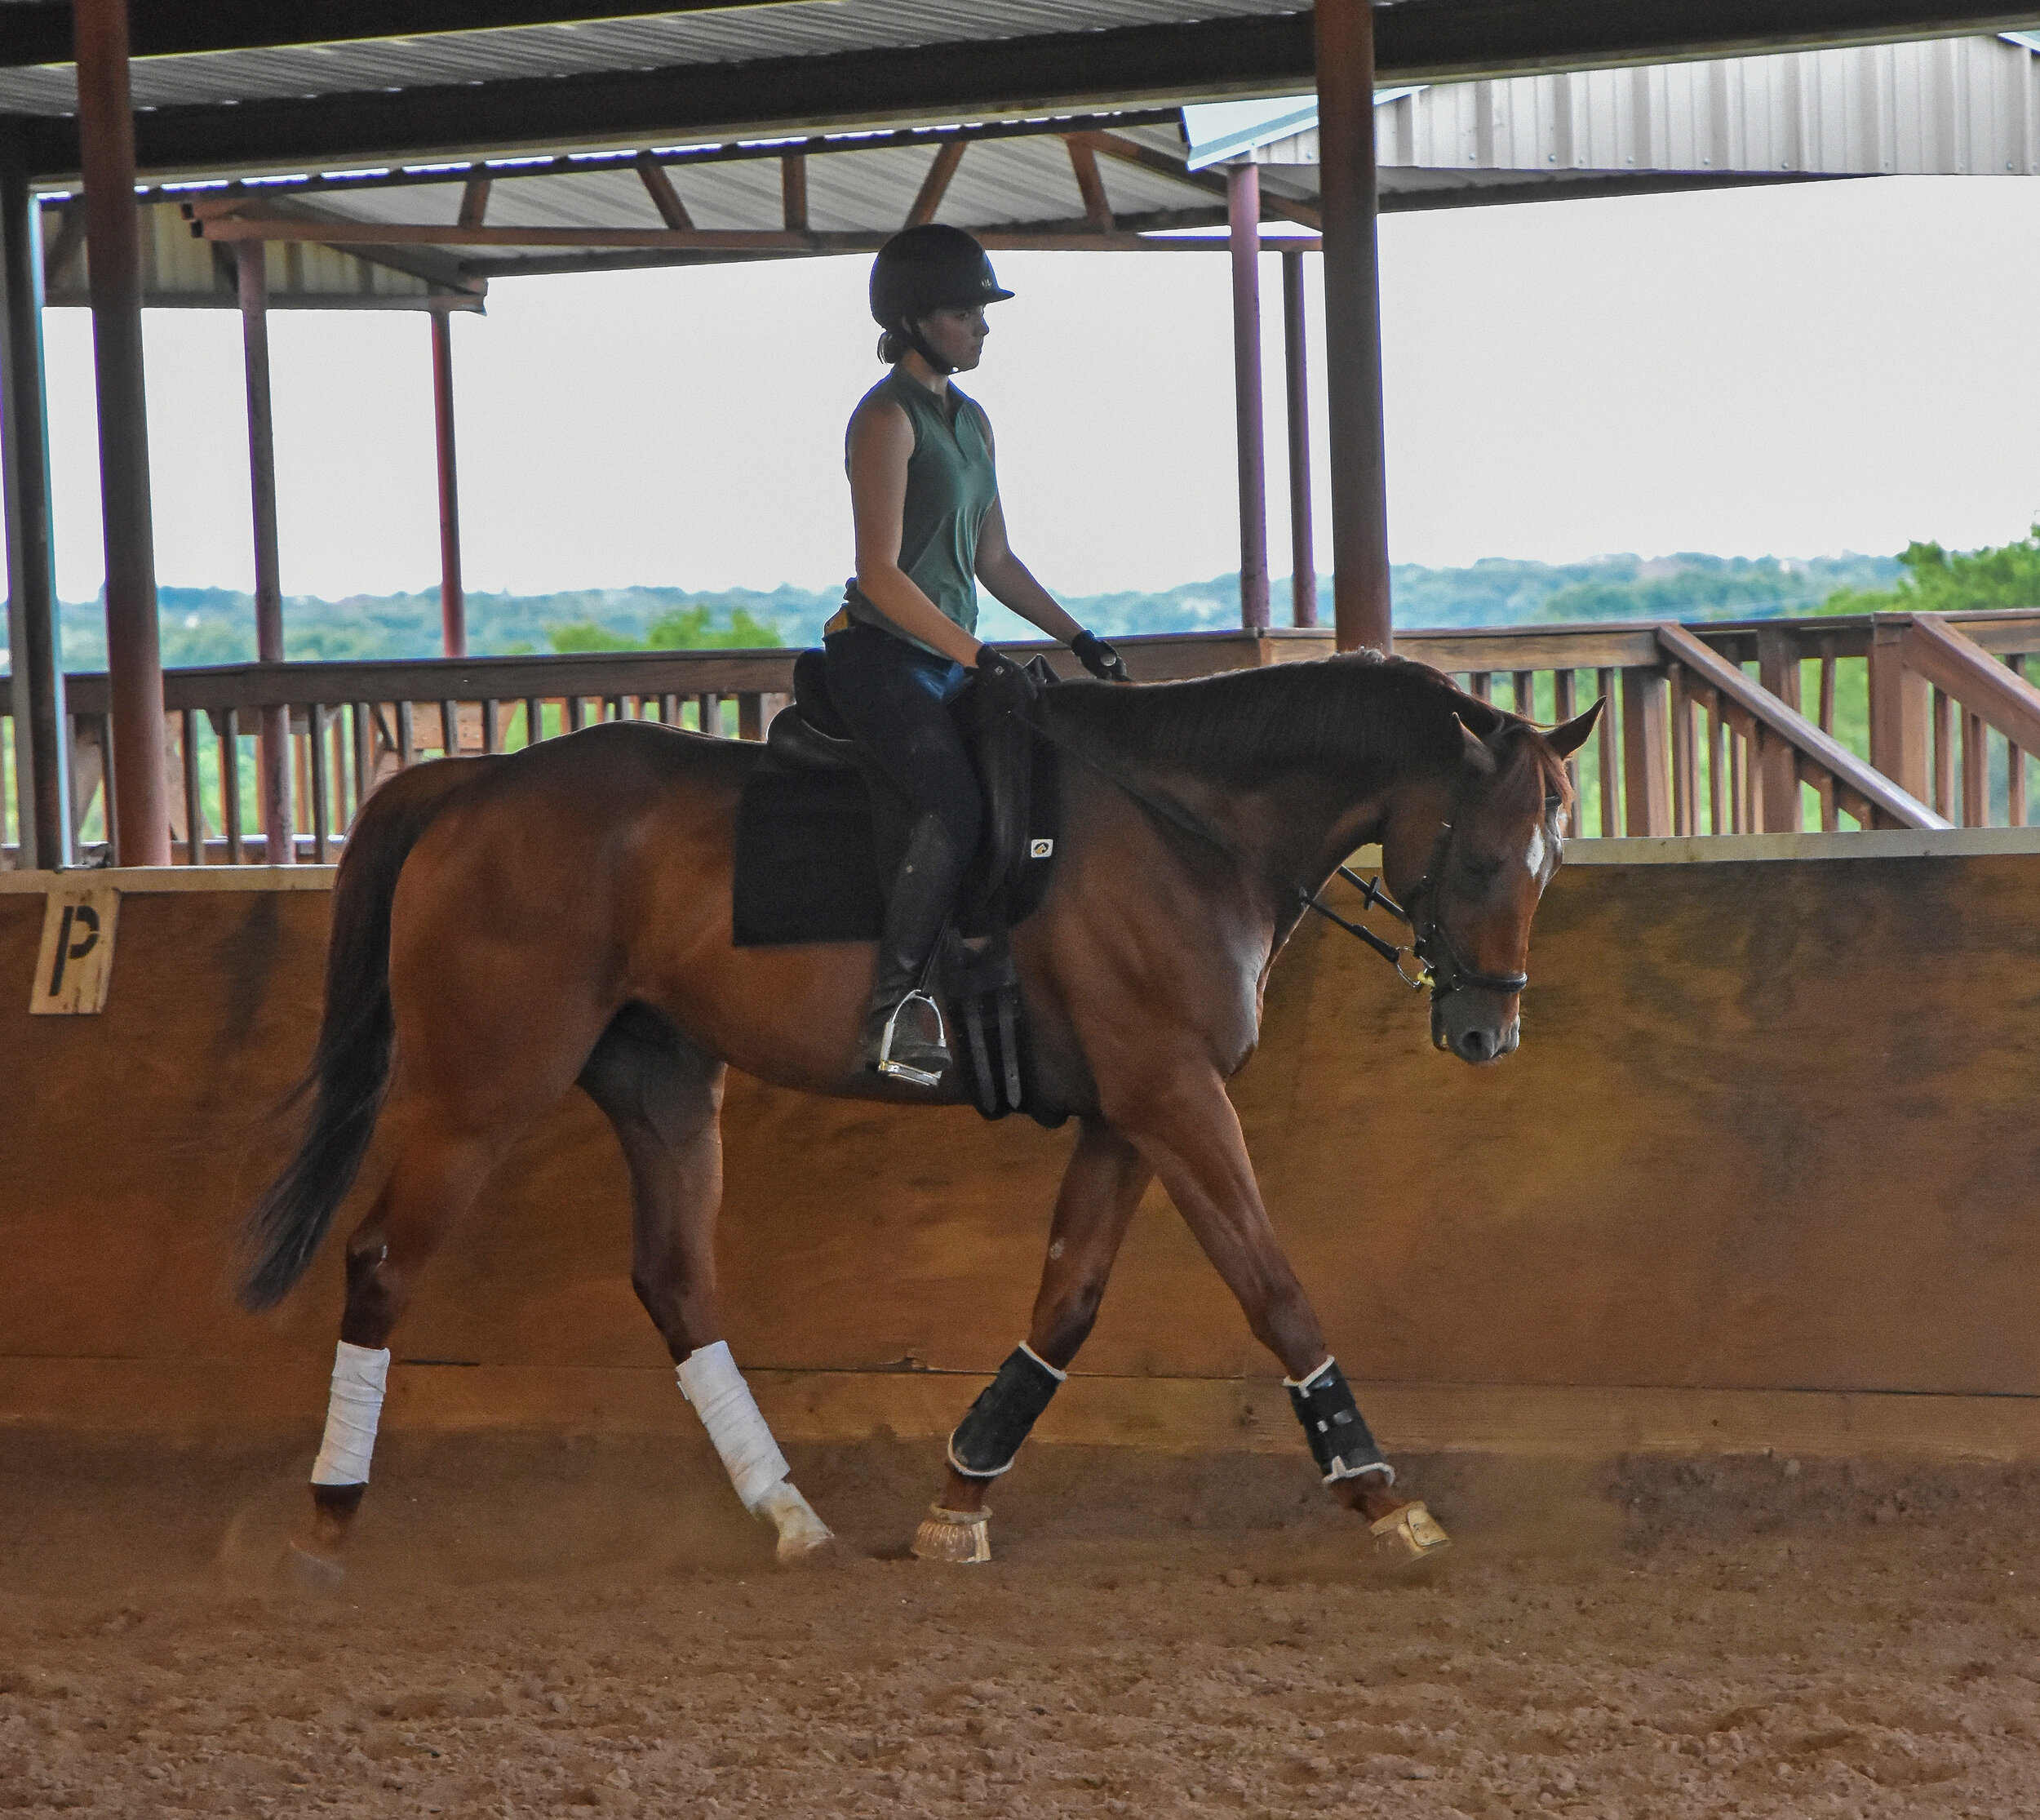 Sterling Thunder and adopter Meghan Adelman